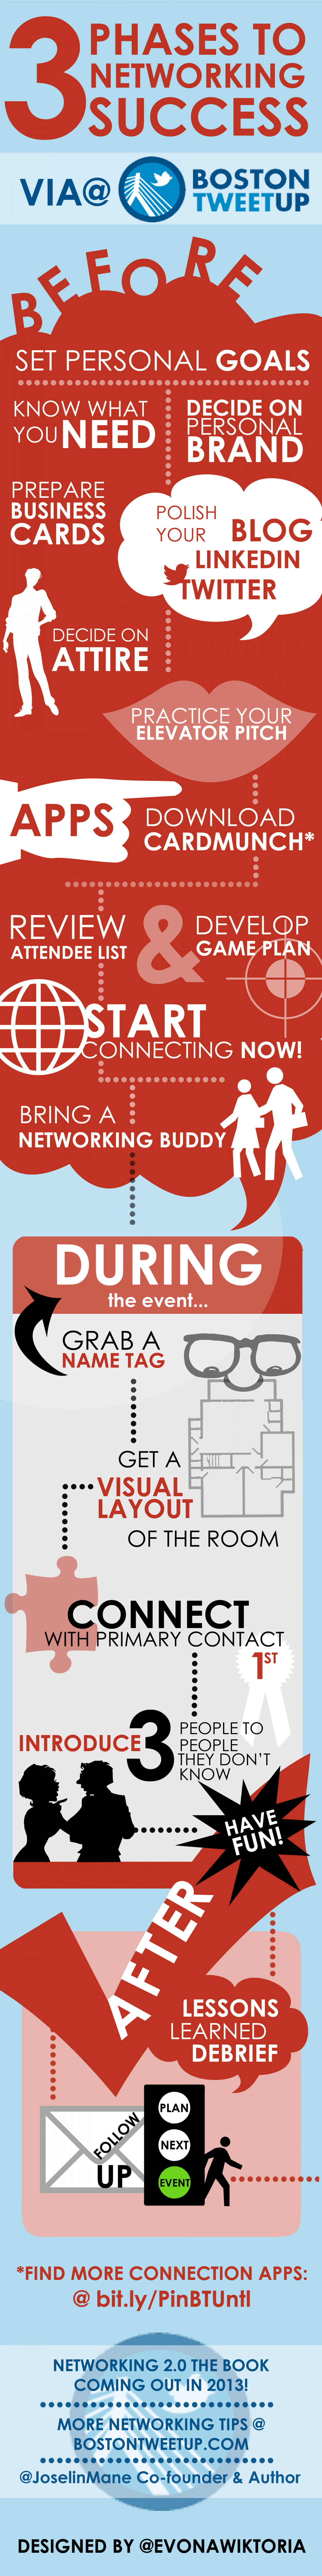 3 Phases To Networking Success Infographic